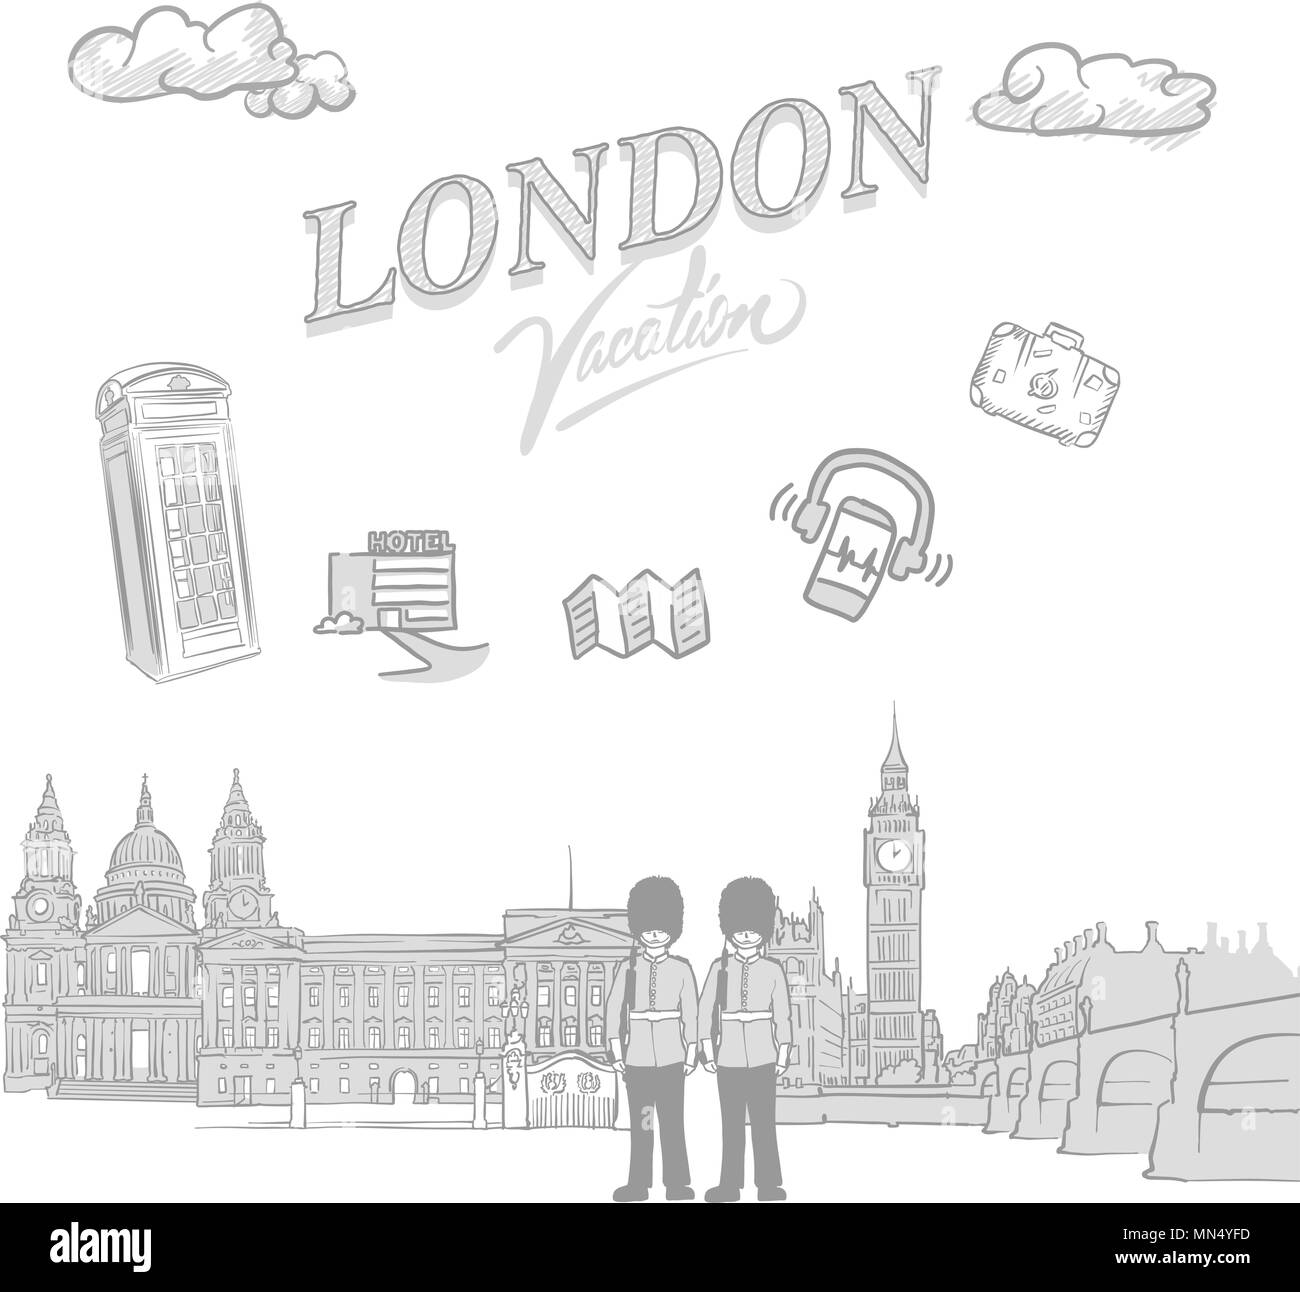 London travel marketing cover, set of hand drawn a vector sketches - Stock Image